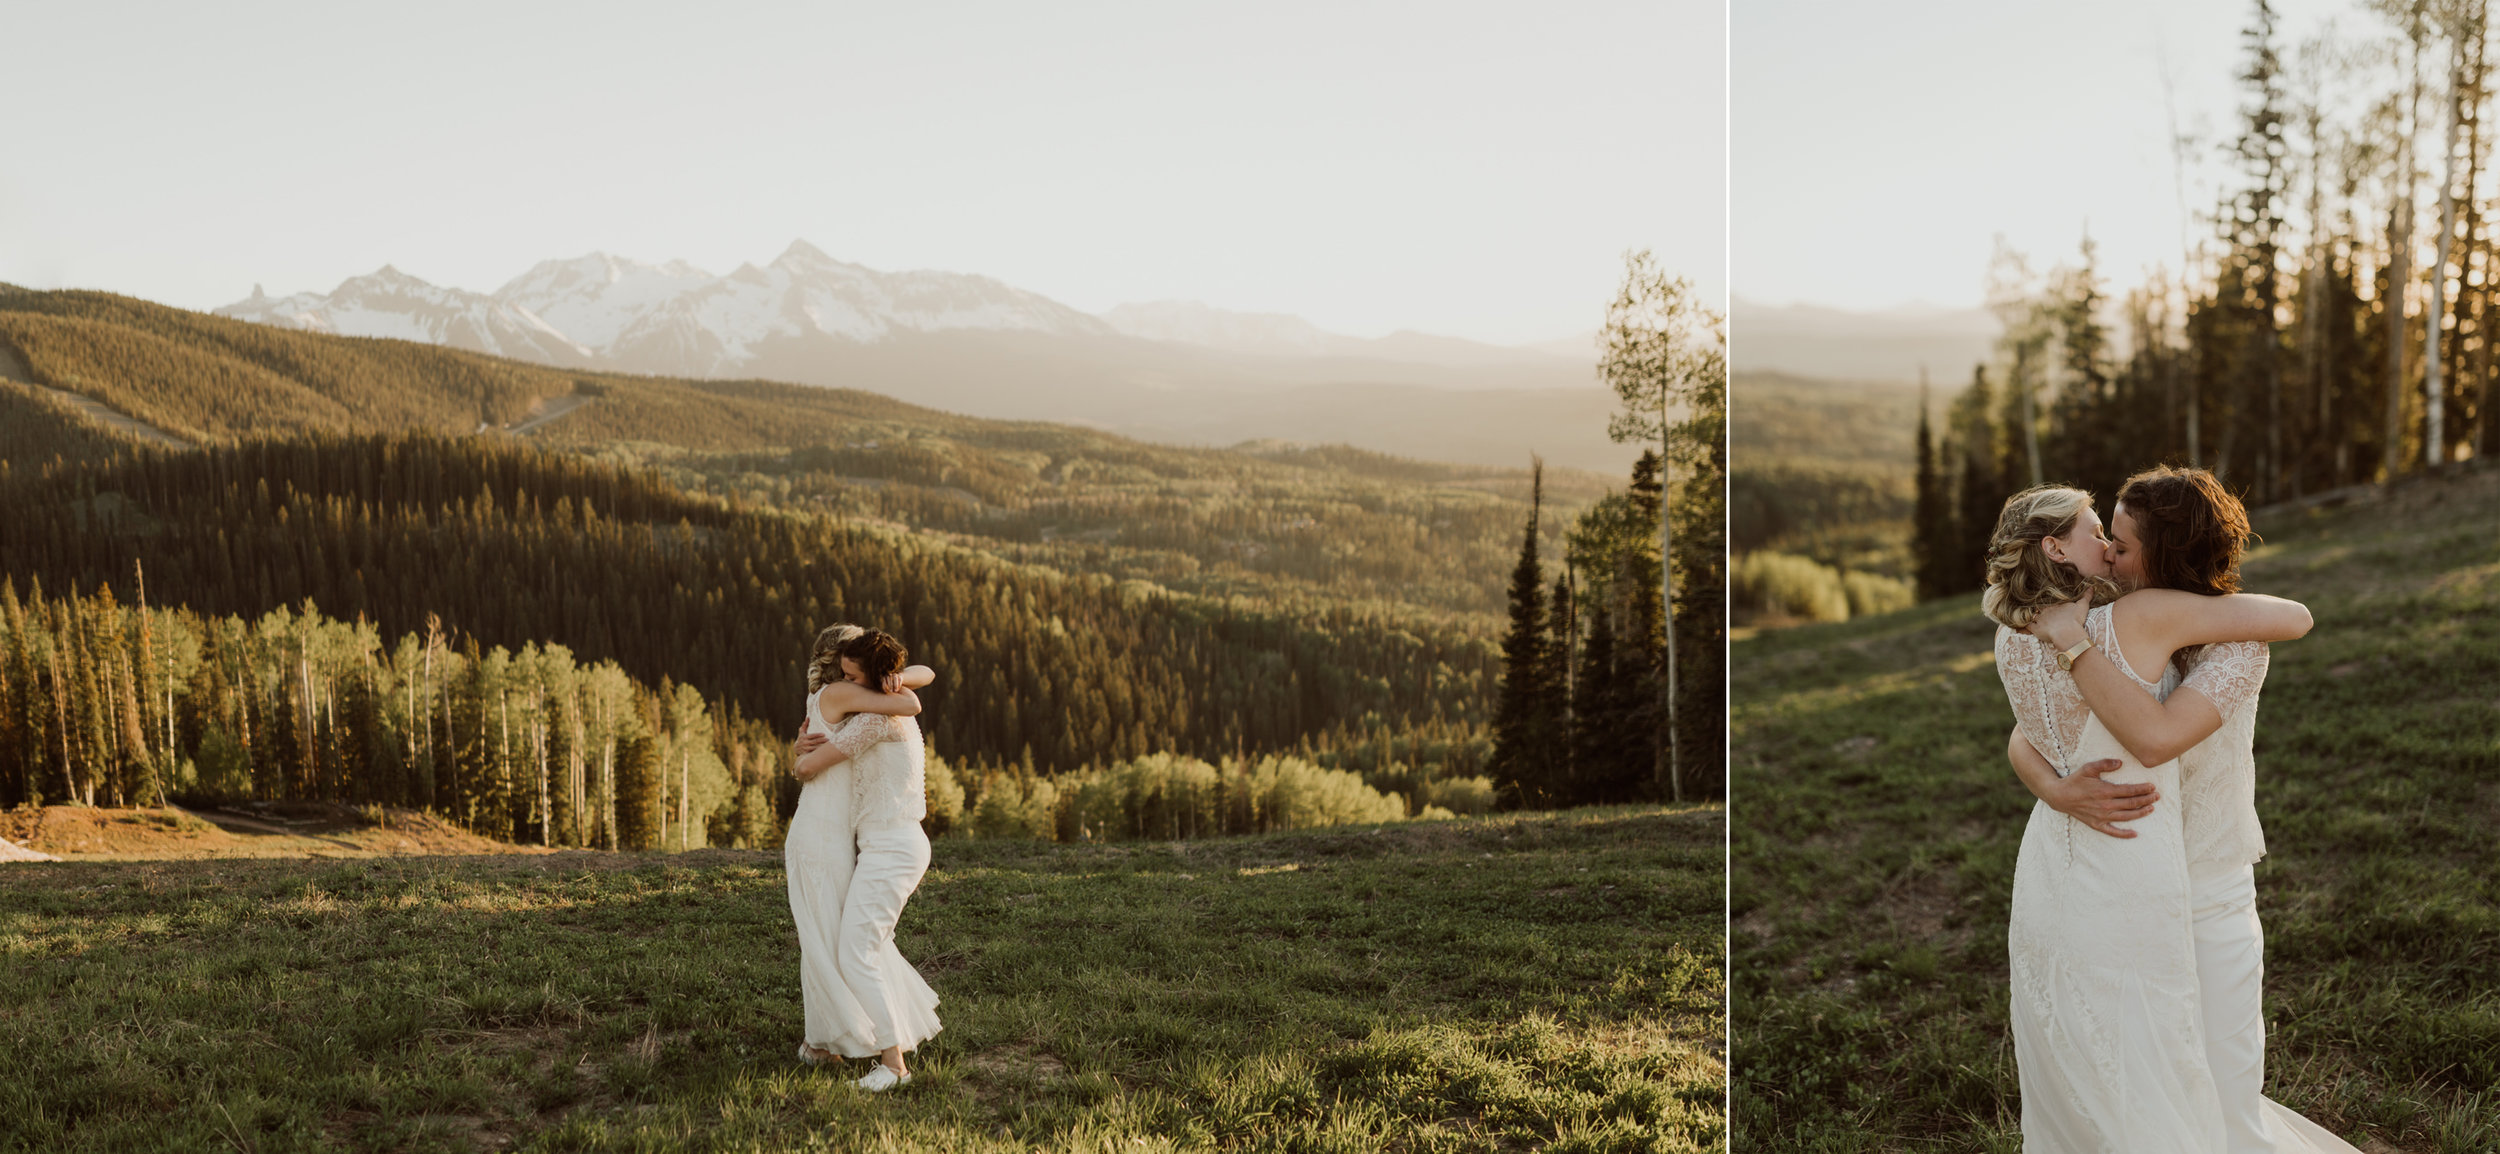 cedarandpines-intimate-san-sofia-telluride-colorado-wedding_PS8.jpg